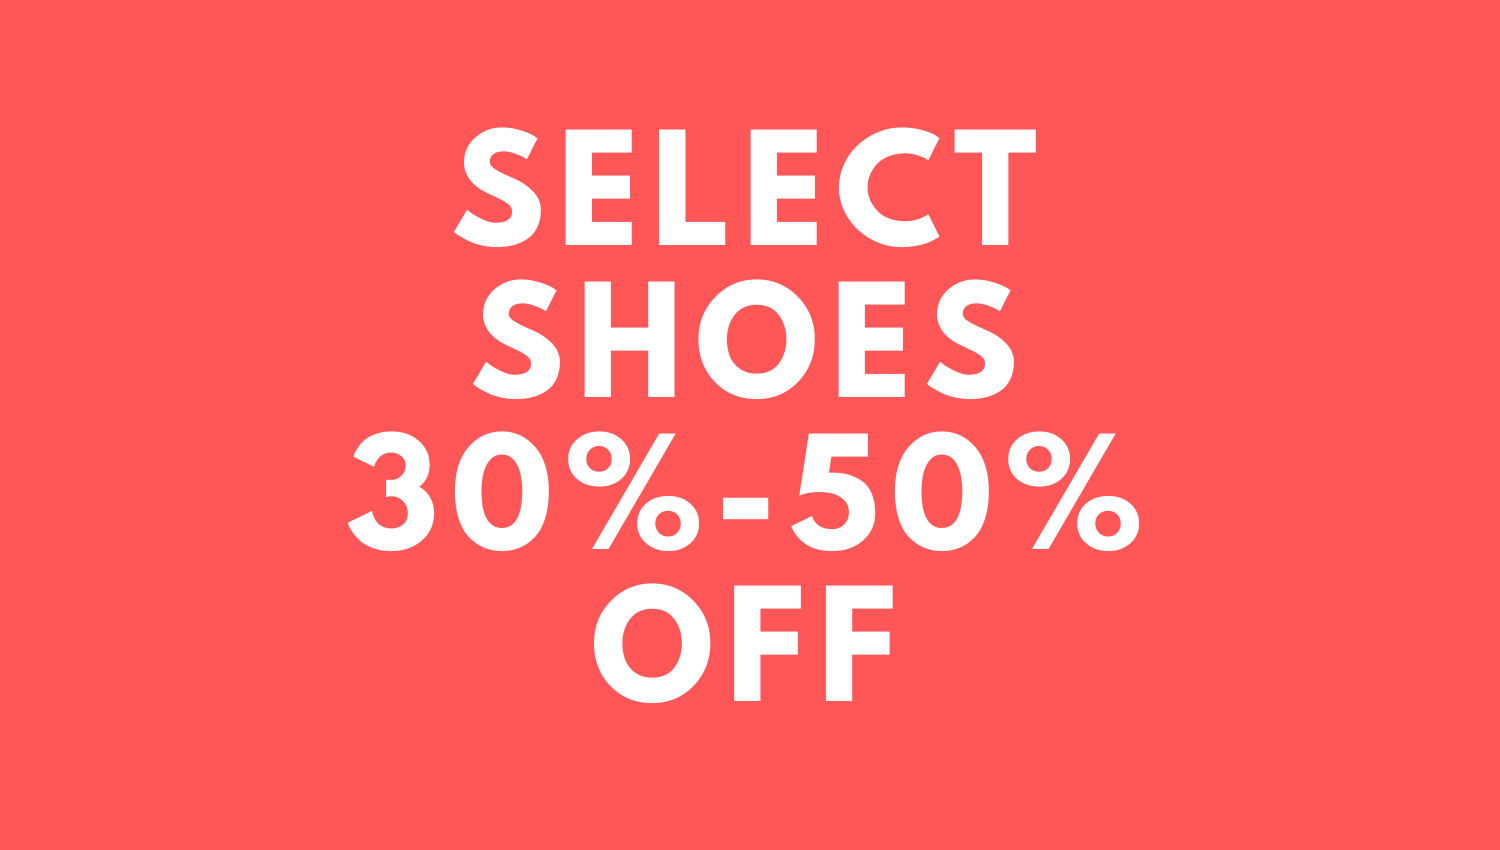 SALE skate shoes